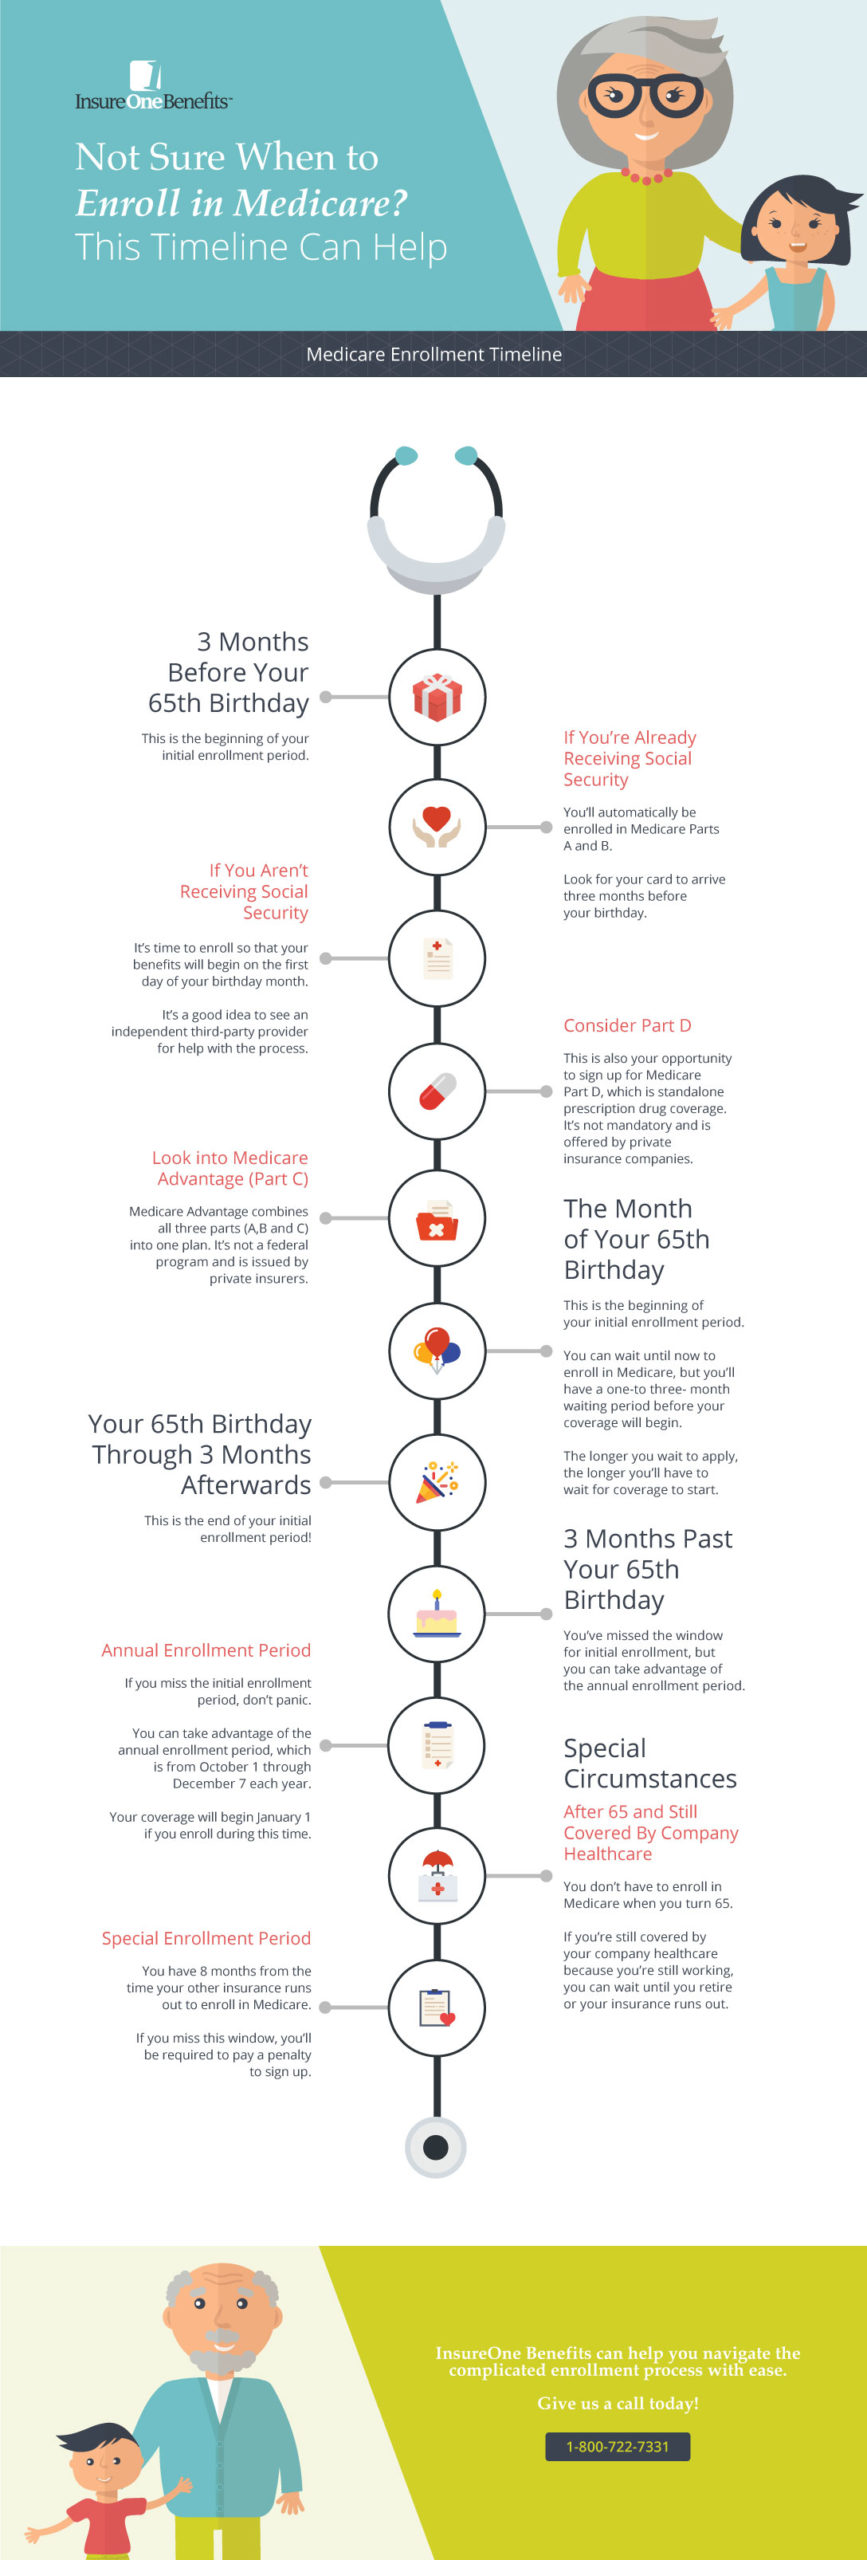 Not Sure When to Enroll in Medicare? This Timeline Can Help PDF Link